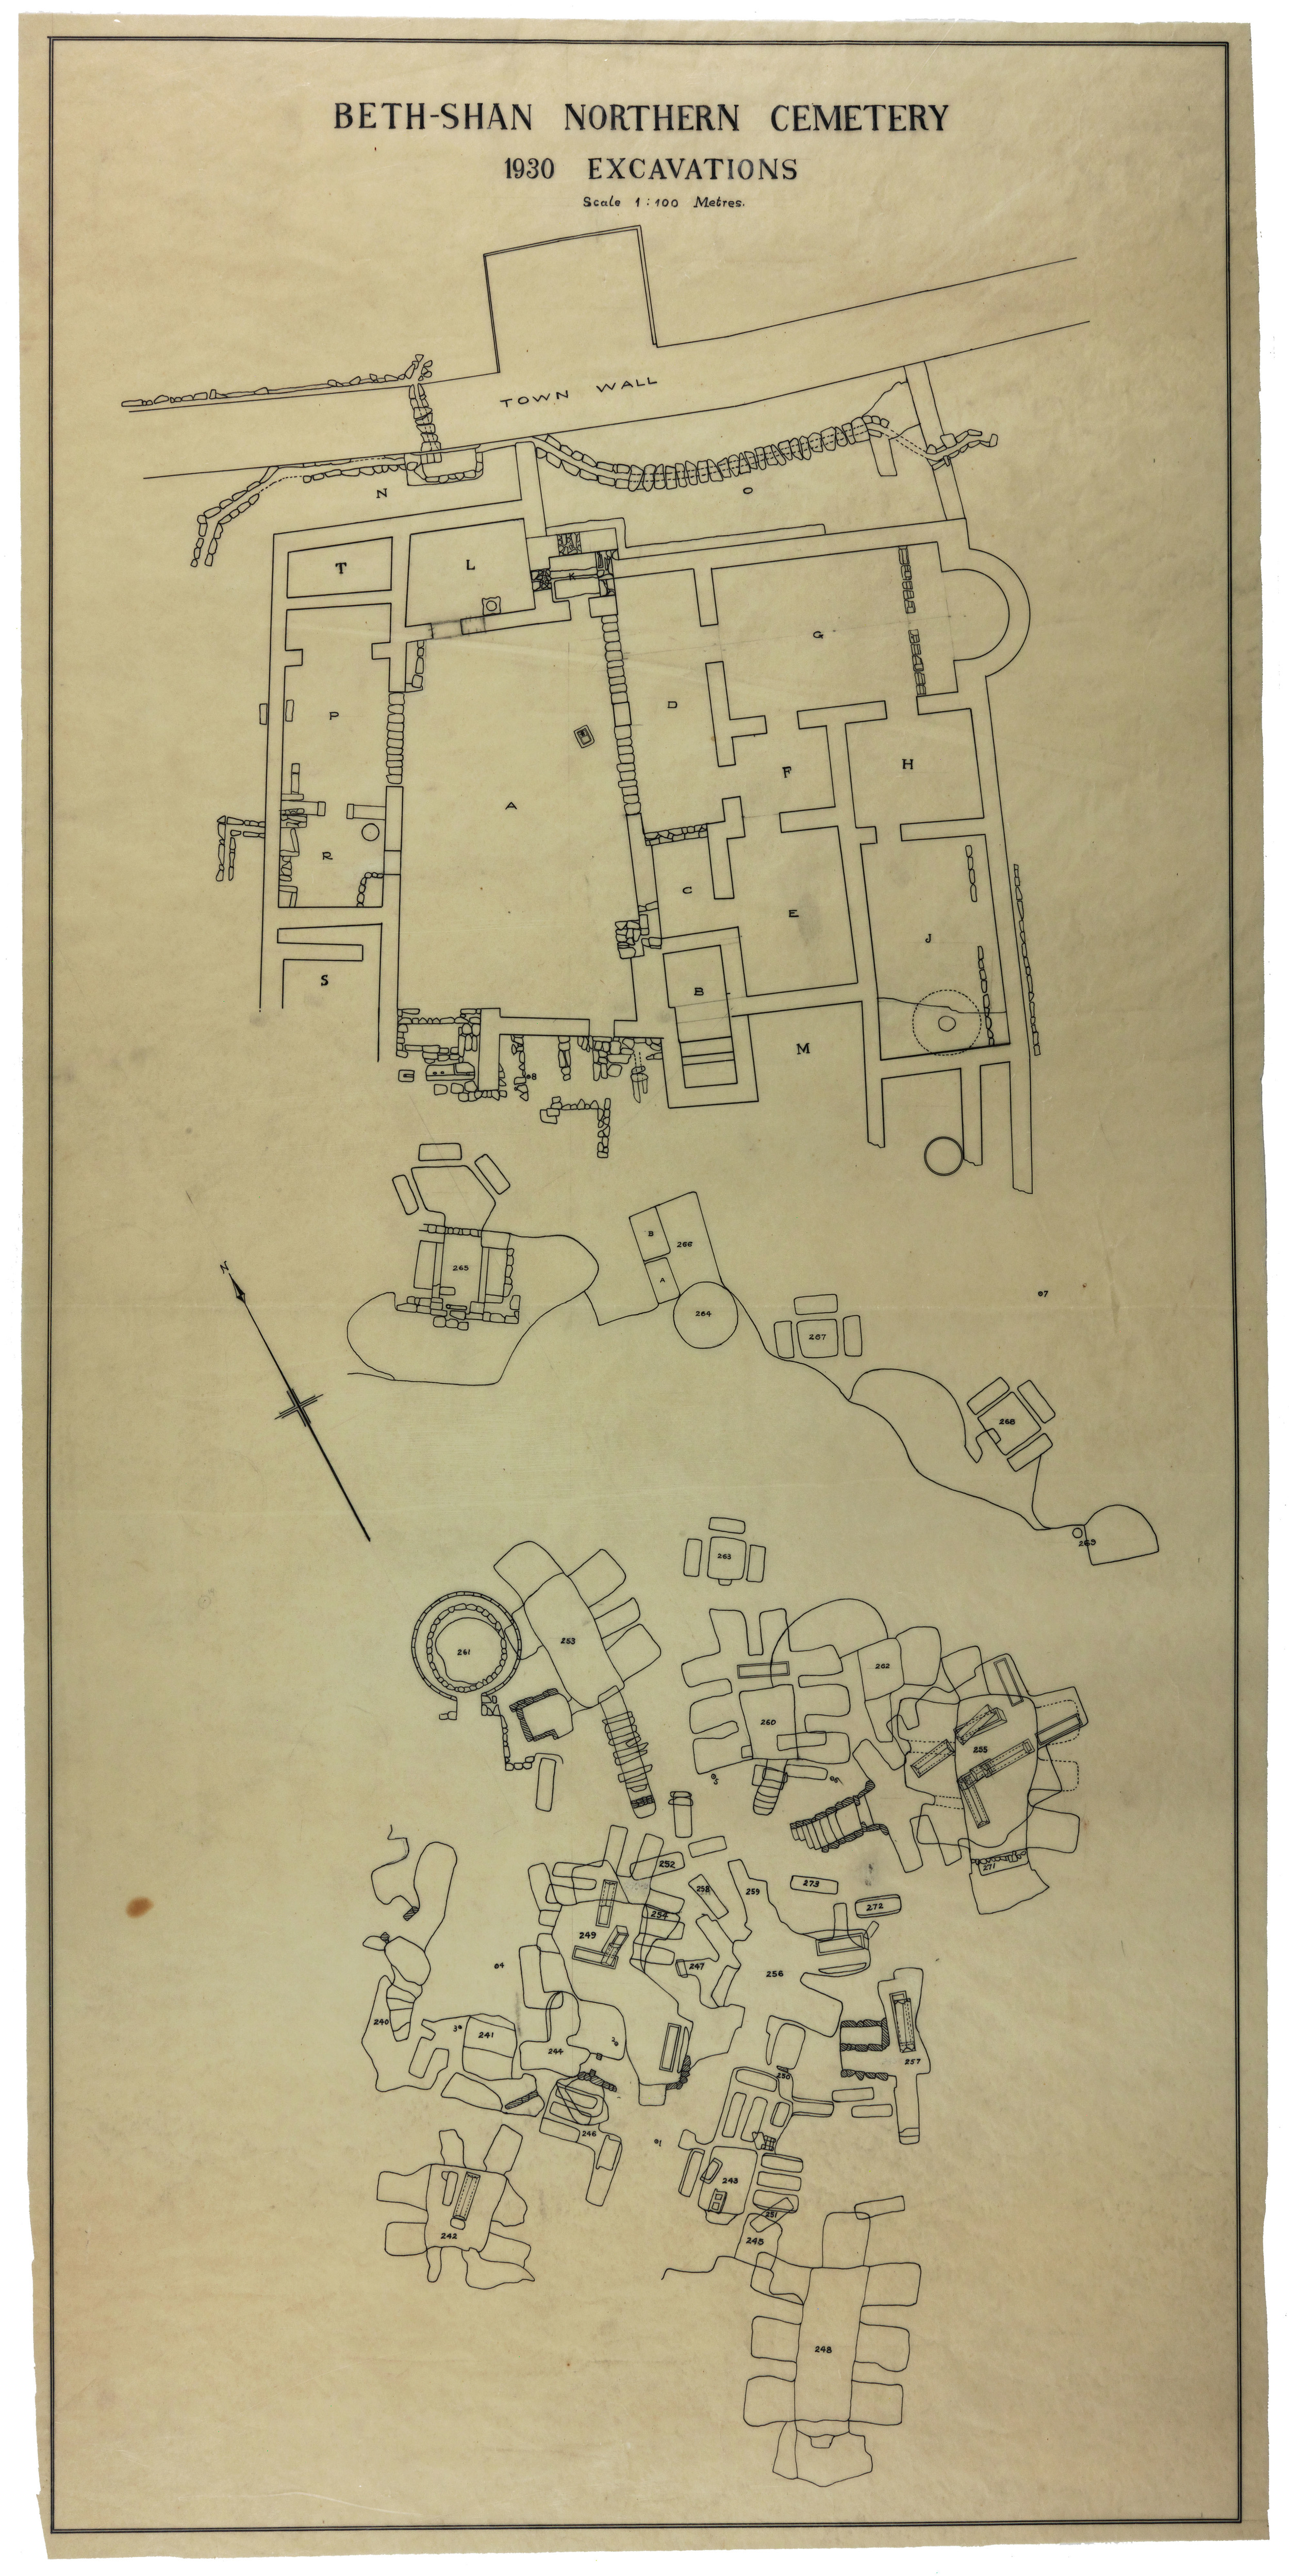 Plan of tombs excavated in 1930.